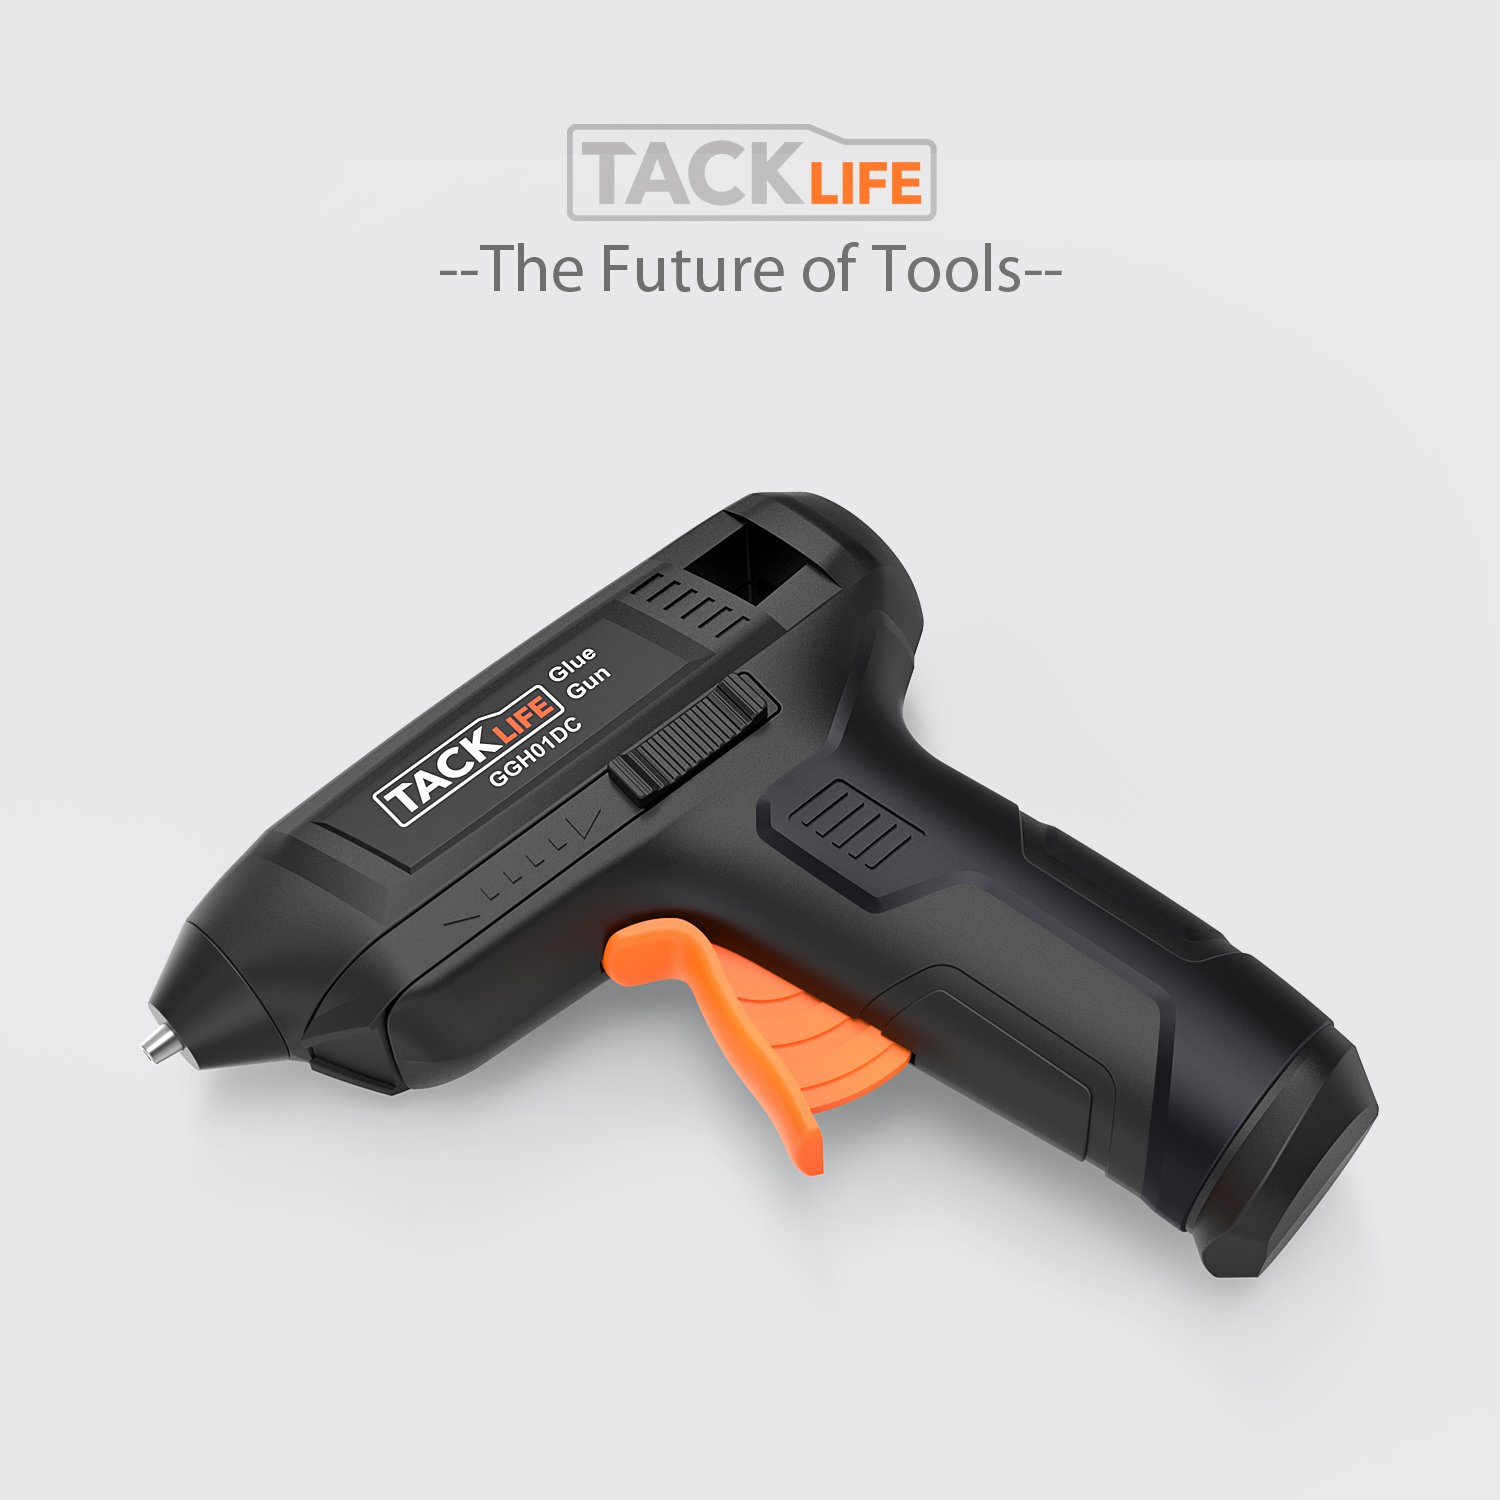 Hot Glue Gun Cordless with 50pcs Glue Sticks, Tacklife 3.6V Rechargeable Melting Glue Gun with USB Charging Cable, Seperate On/Off Switch for DIY and Repair Kit - GGH01DC by TACKLIFE (Image #9)